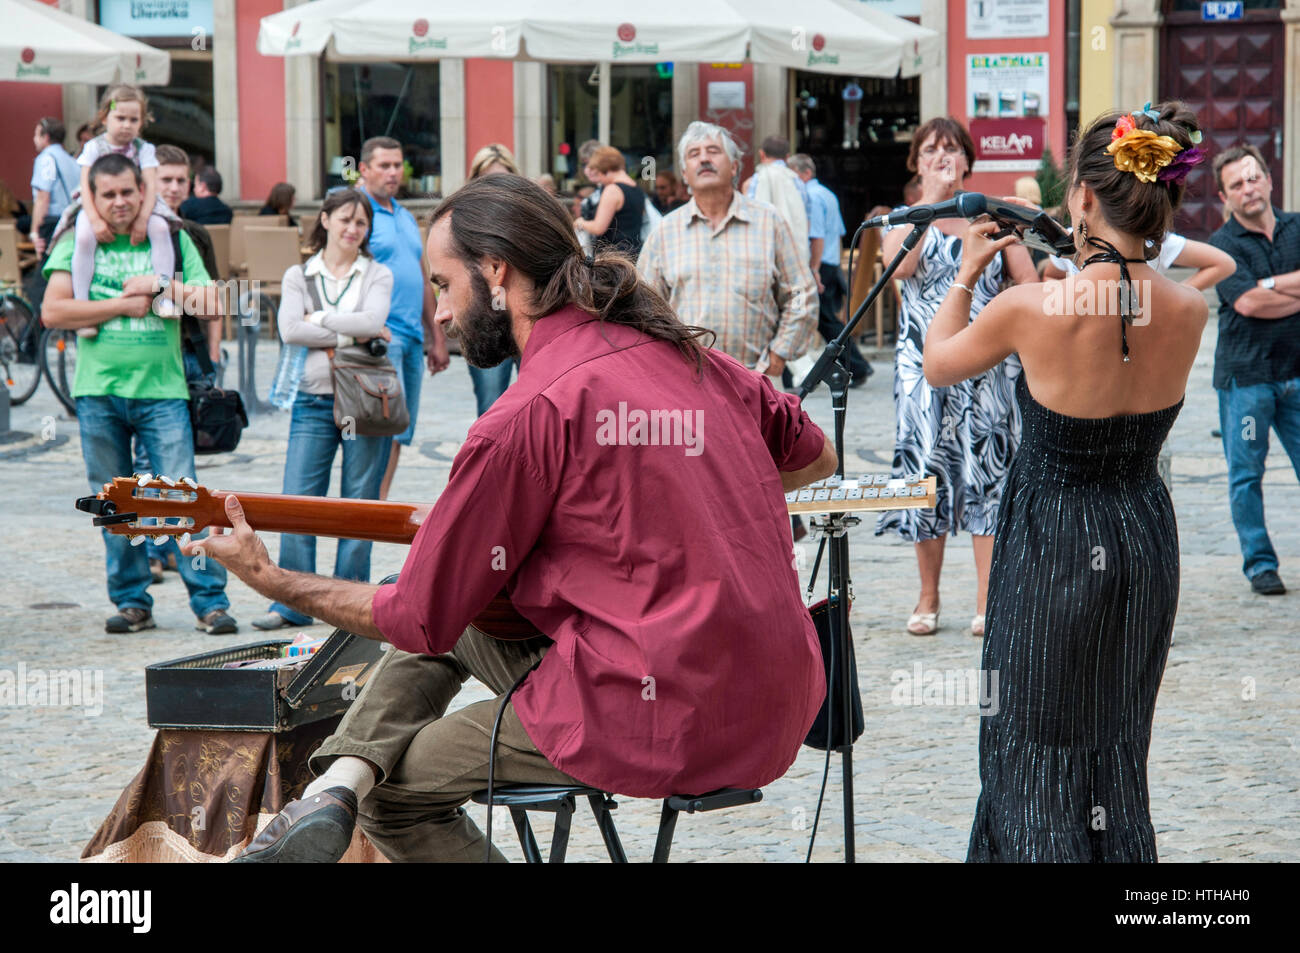 Singer and guitar player duo performing at Rynek (Market Square) in Wroclaw, Lower Silesia, Poland - Stock Image